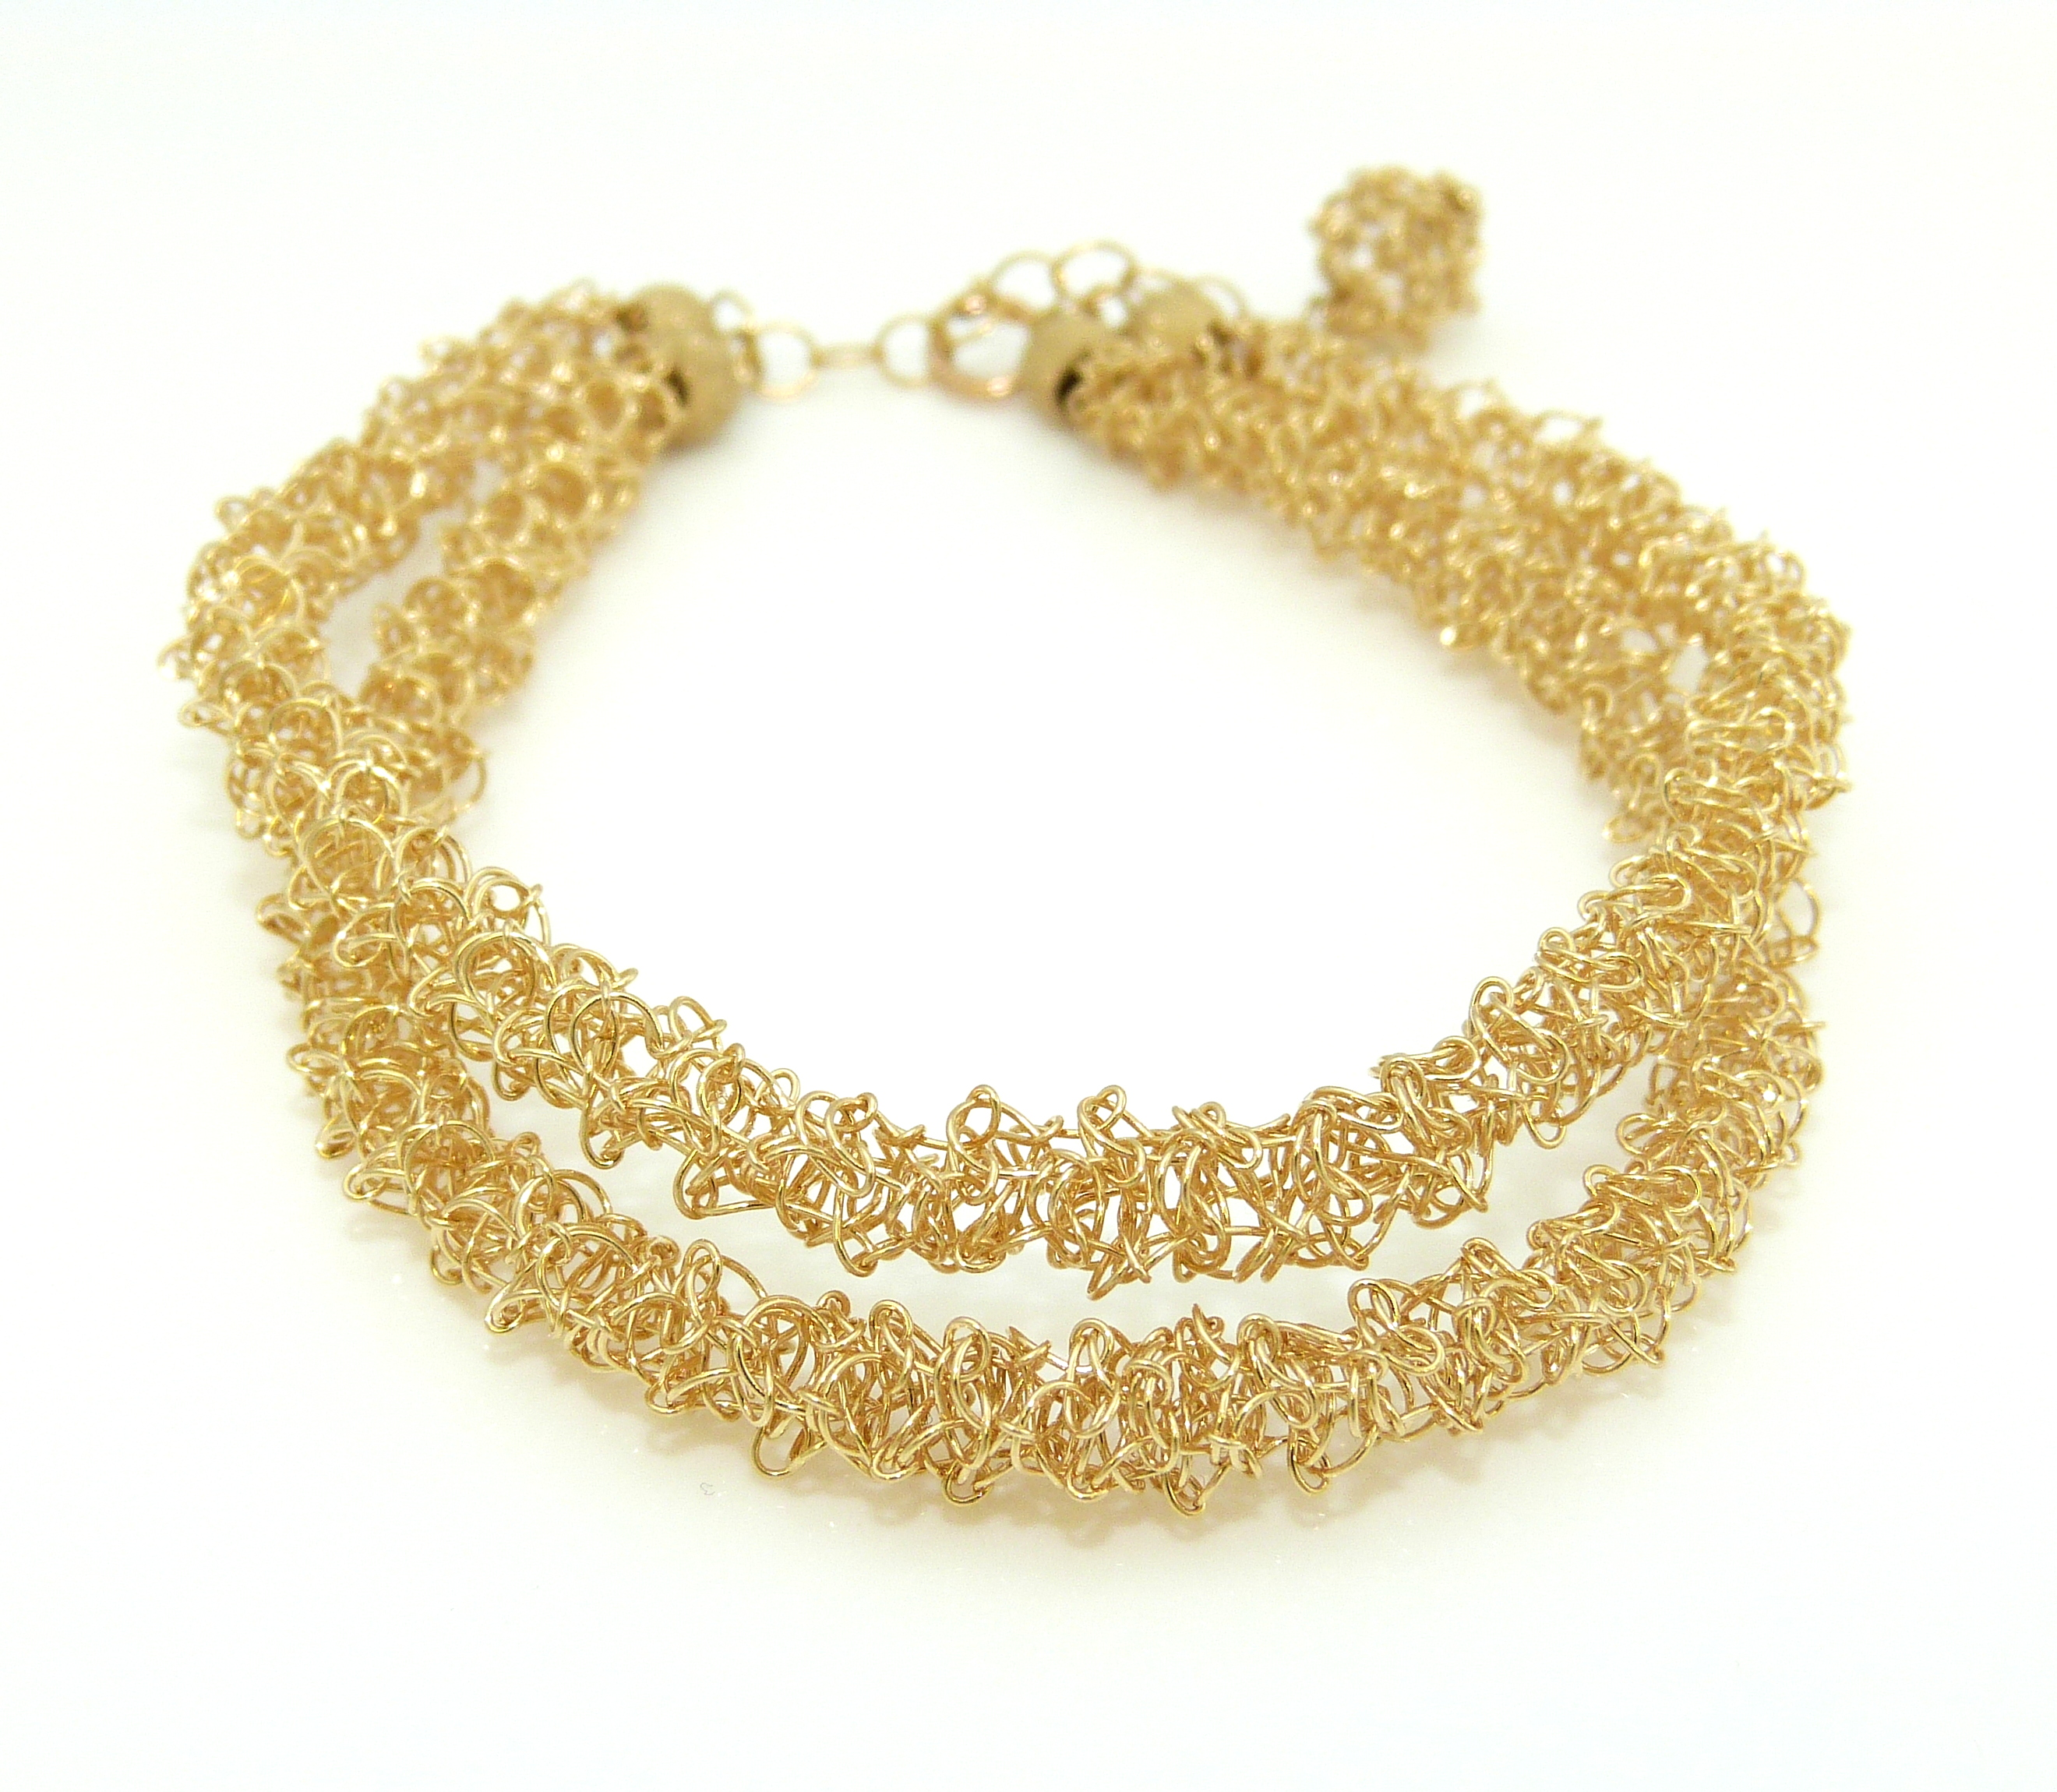 Double Strang Yellow Gold Filled Bracelet